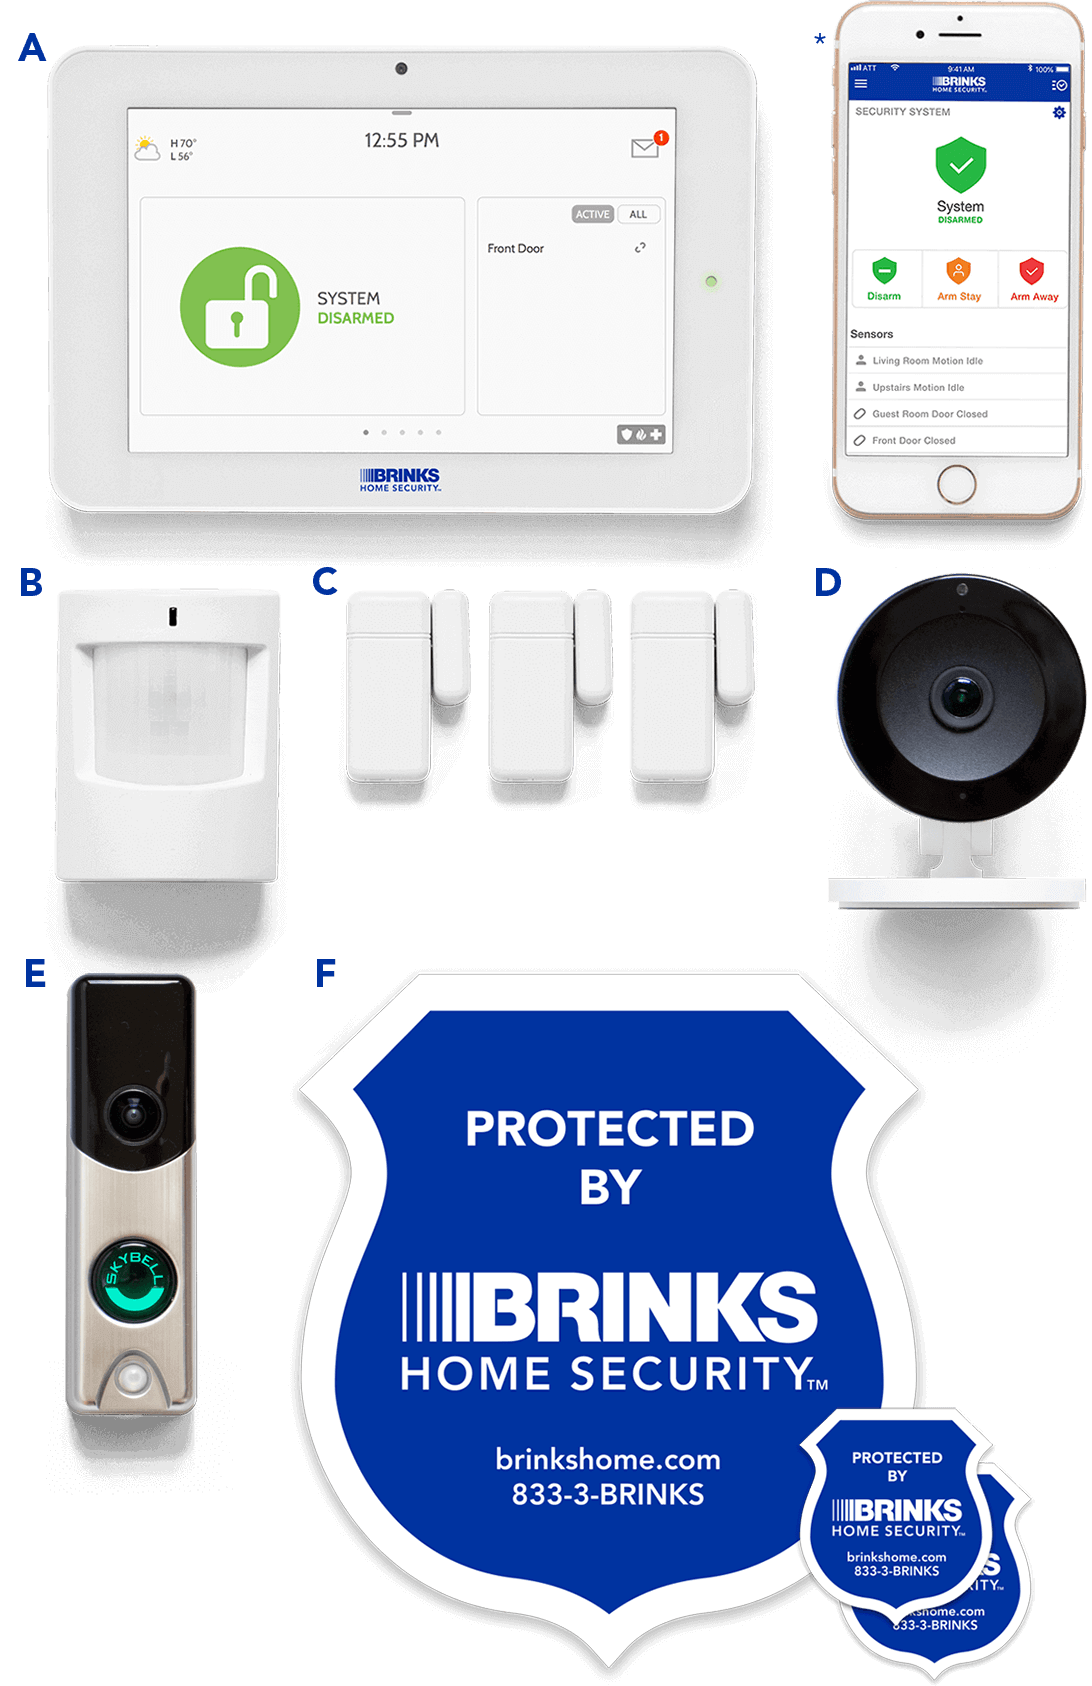 Best Home Security Camera System With Video Surveillance